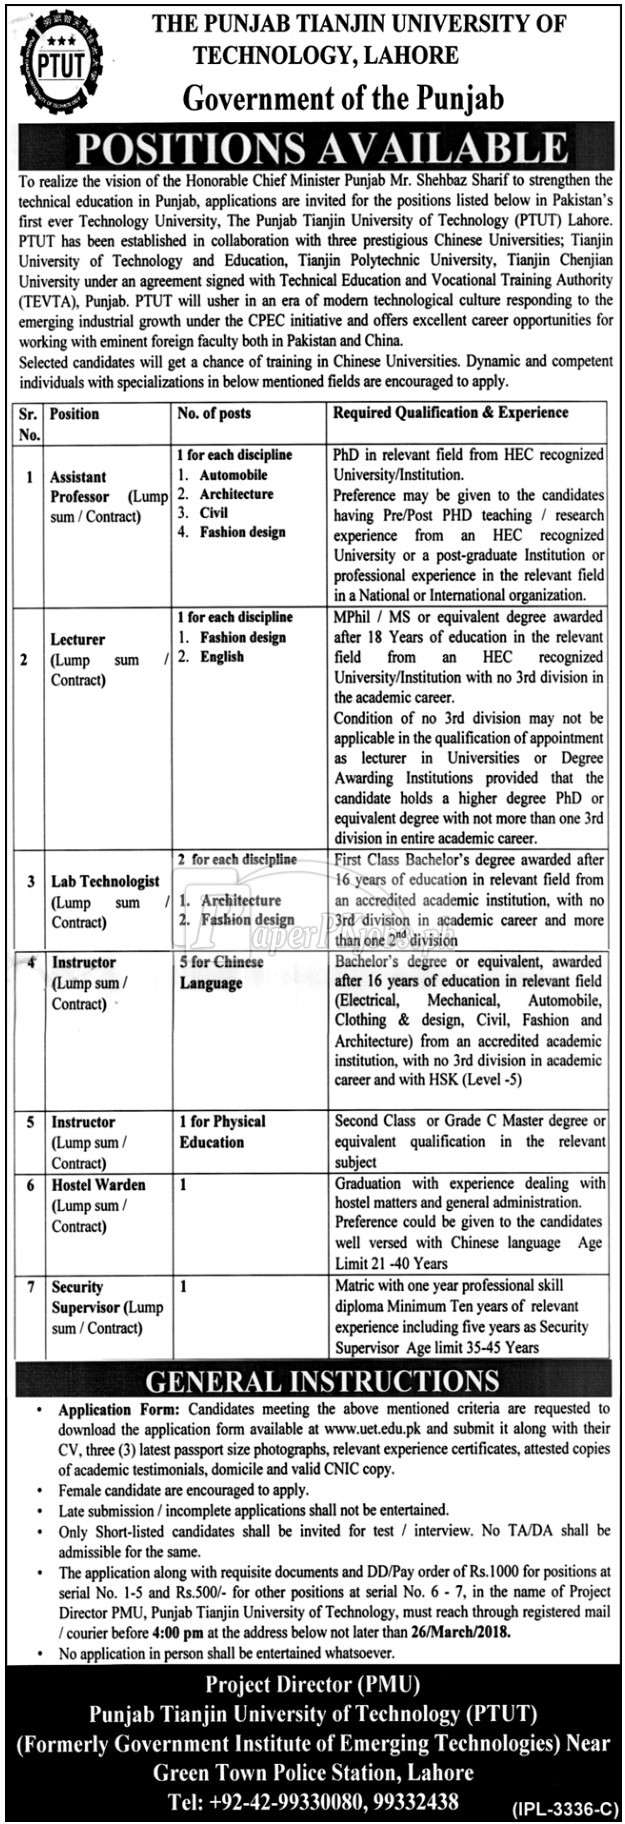 Punjab Tianjin University of Technology PTUT Lahore Jobs 2018